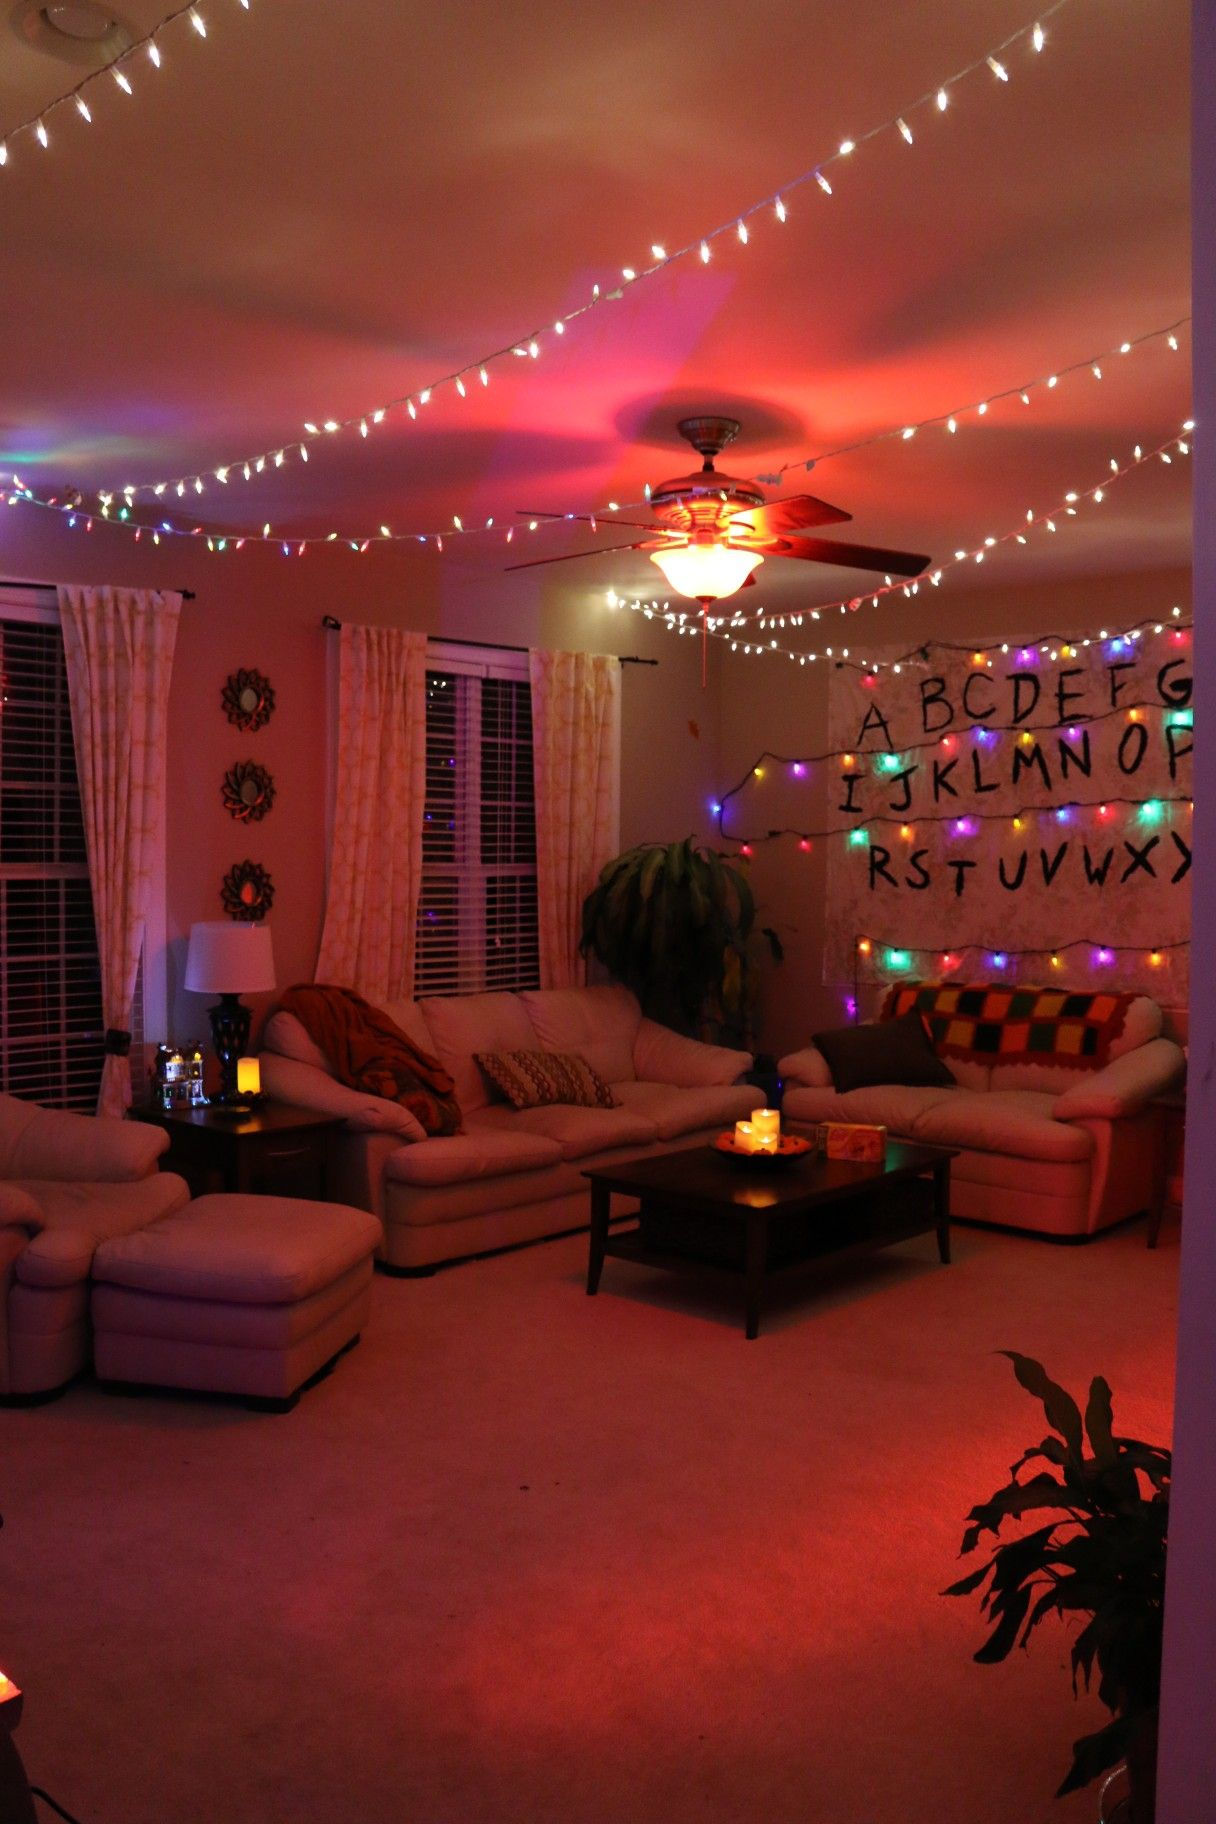 Simple Decoration Of Birthday Room Living Room Decorating Ideas For Birthday Birthday Decorations At Home Simple Birthday Decorations Birthday Room Decorations